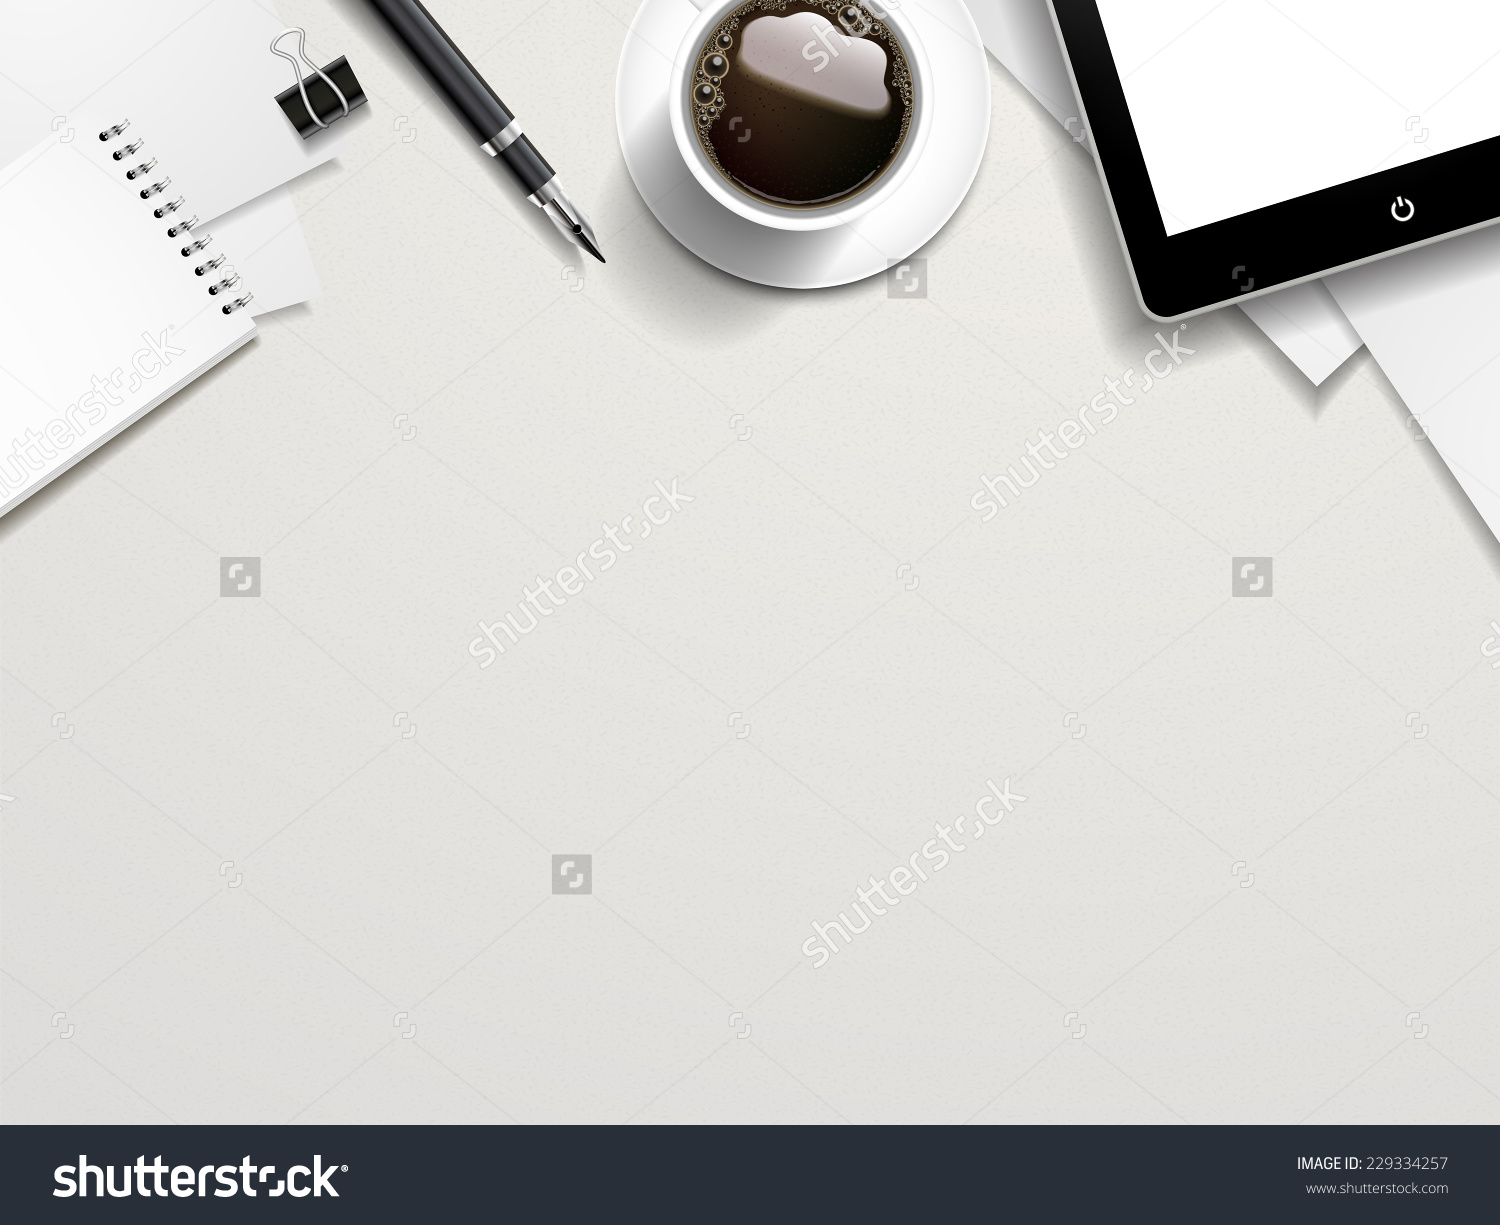 Top View Of Working Place Elements On White Table Stock Vector